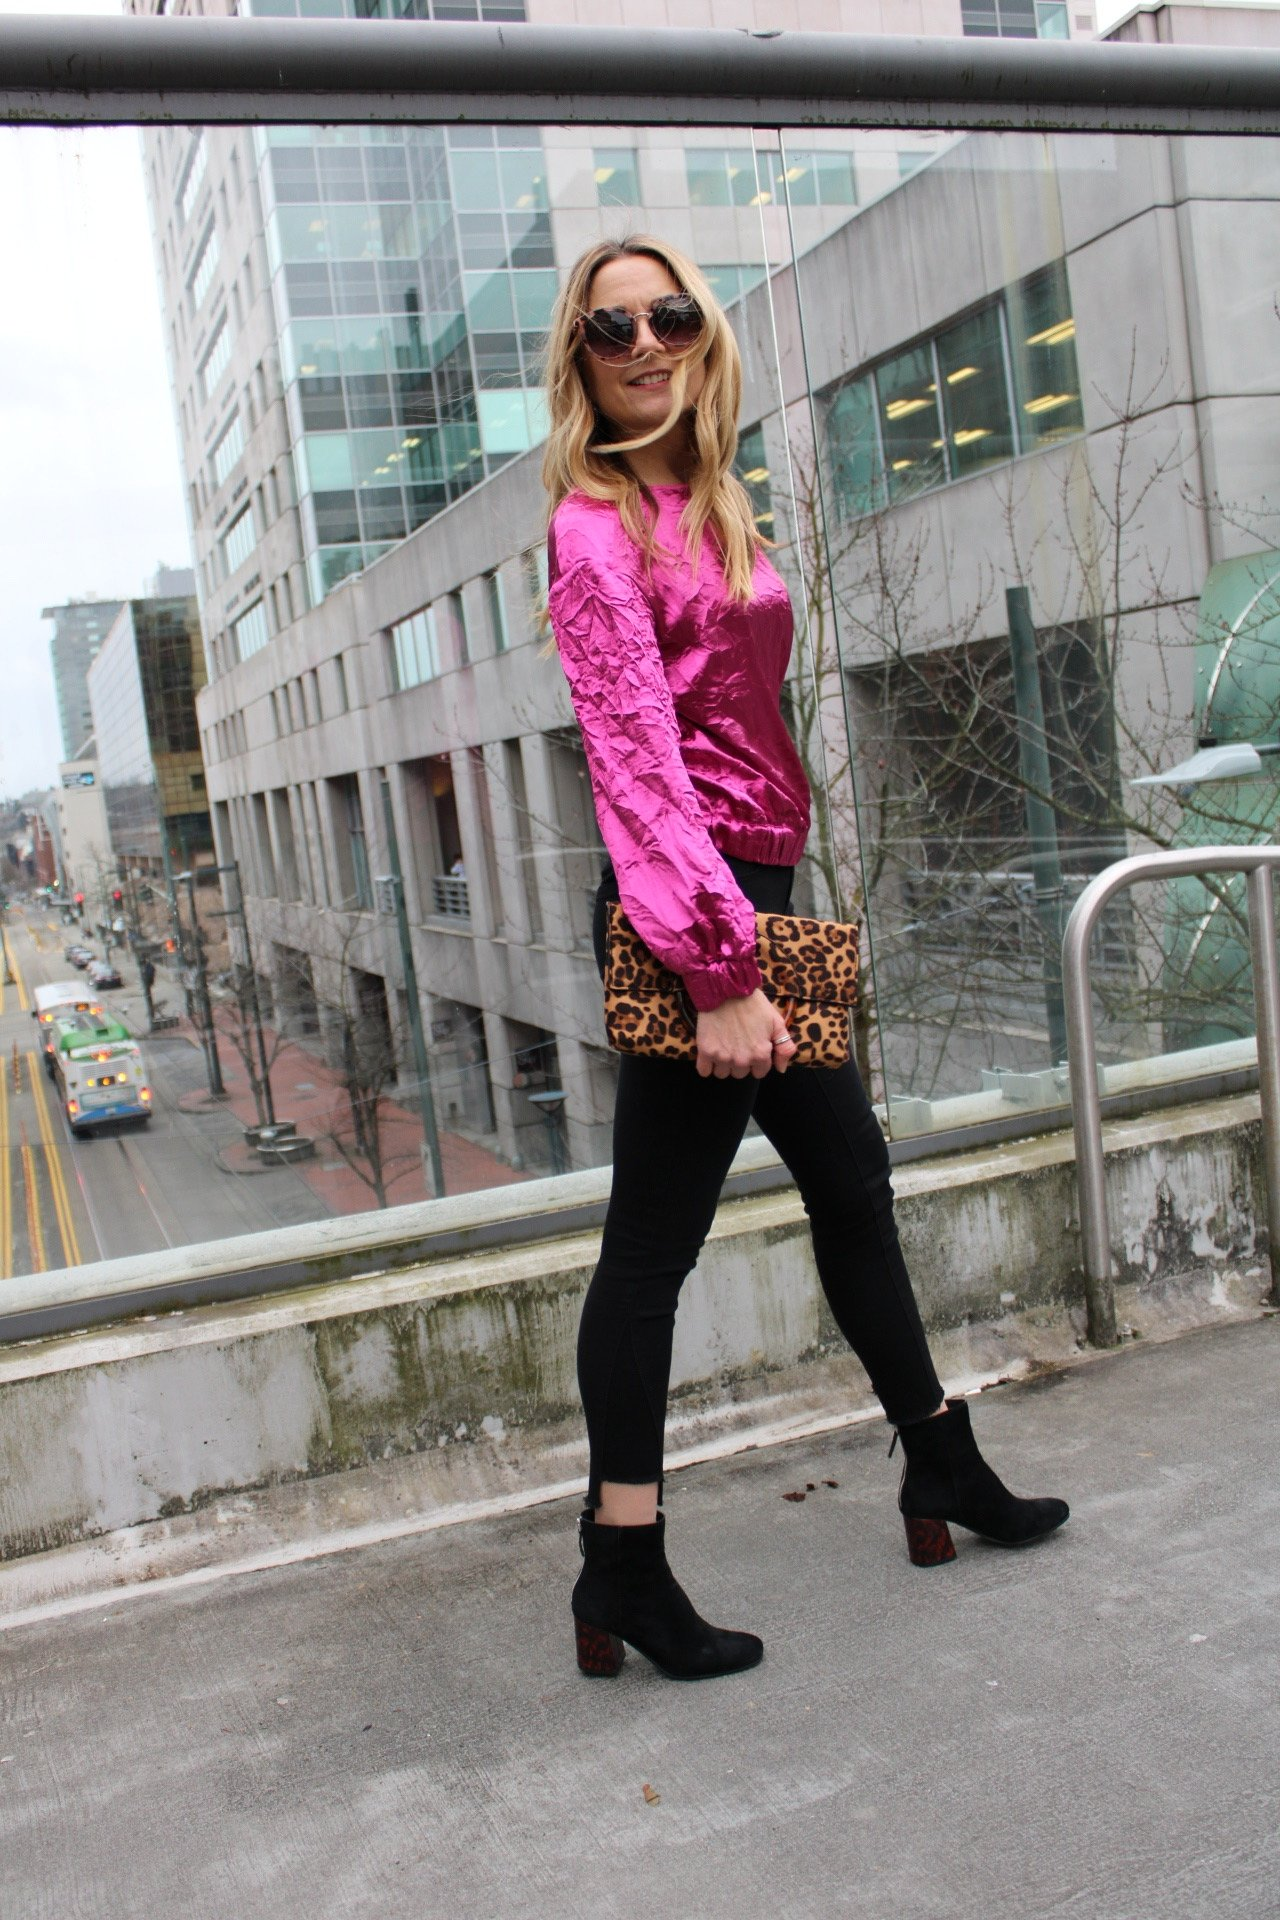 valentines day top, pink top, date  night outfit, going out outfit, blouse, women's fashion, black boots, target, dolce vita